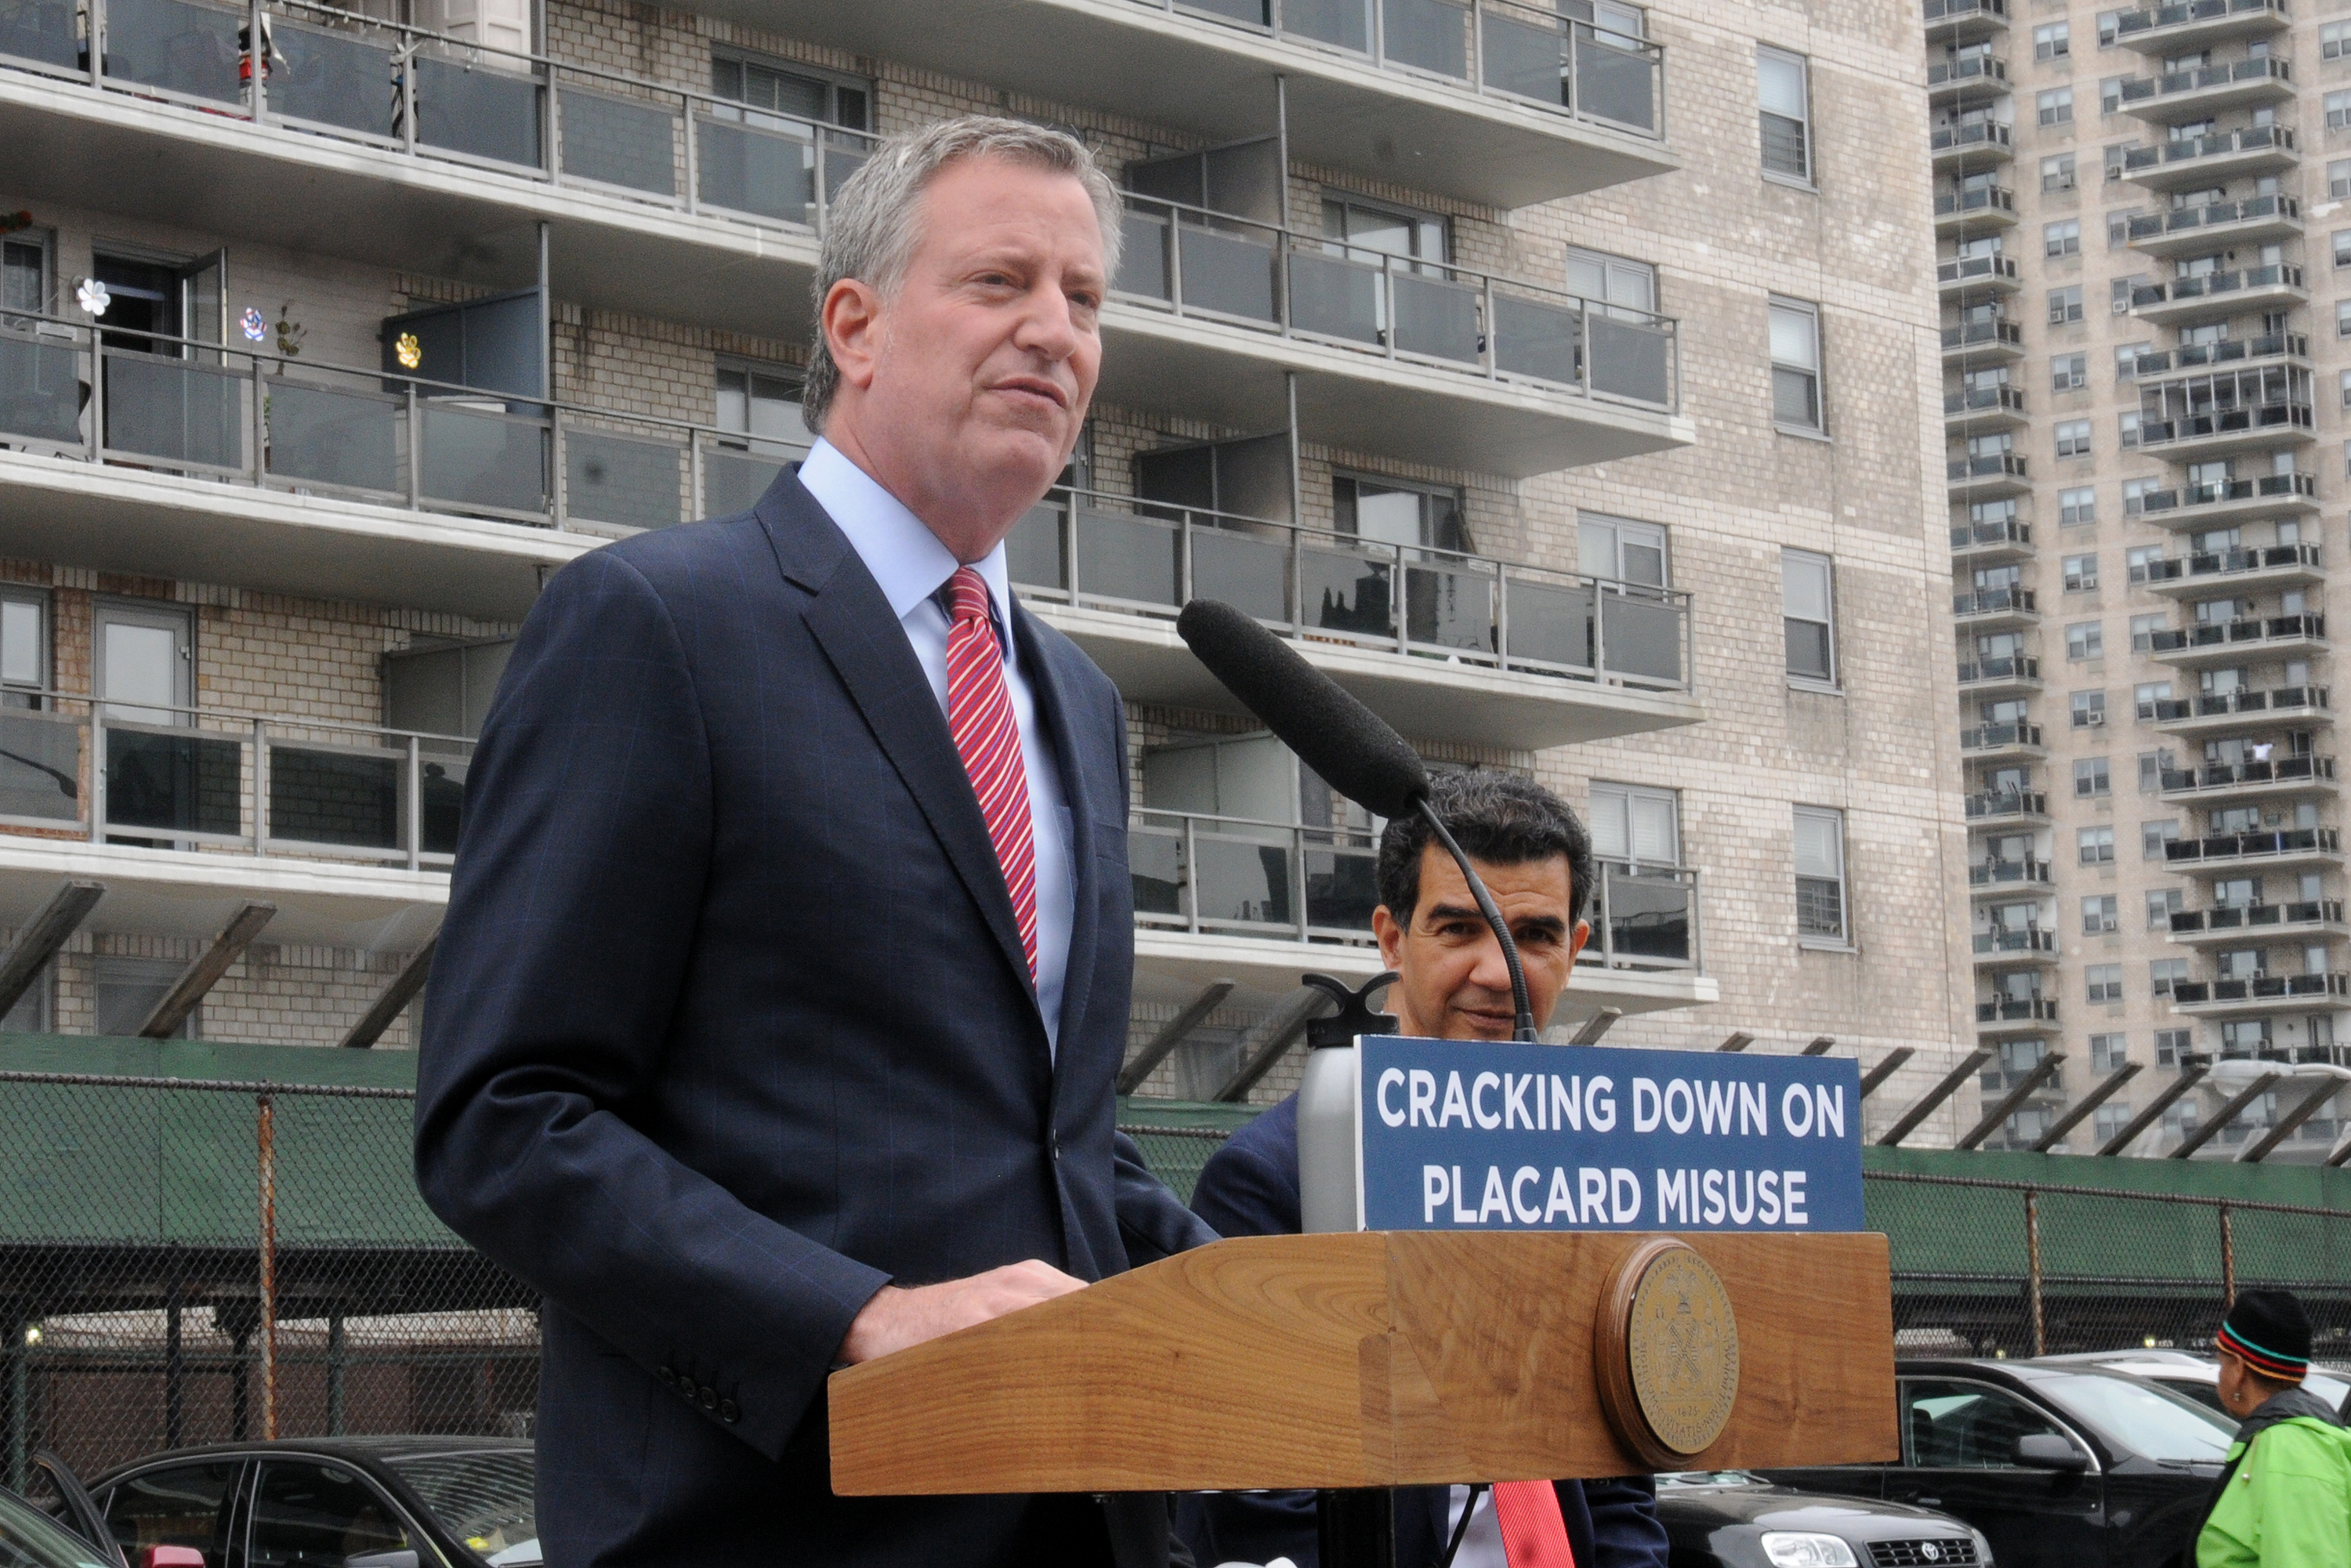 Mayor Bill de Blasio announces a plan in 2017 to crack down on placard abuse.